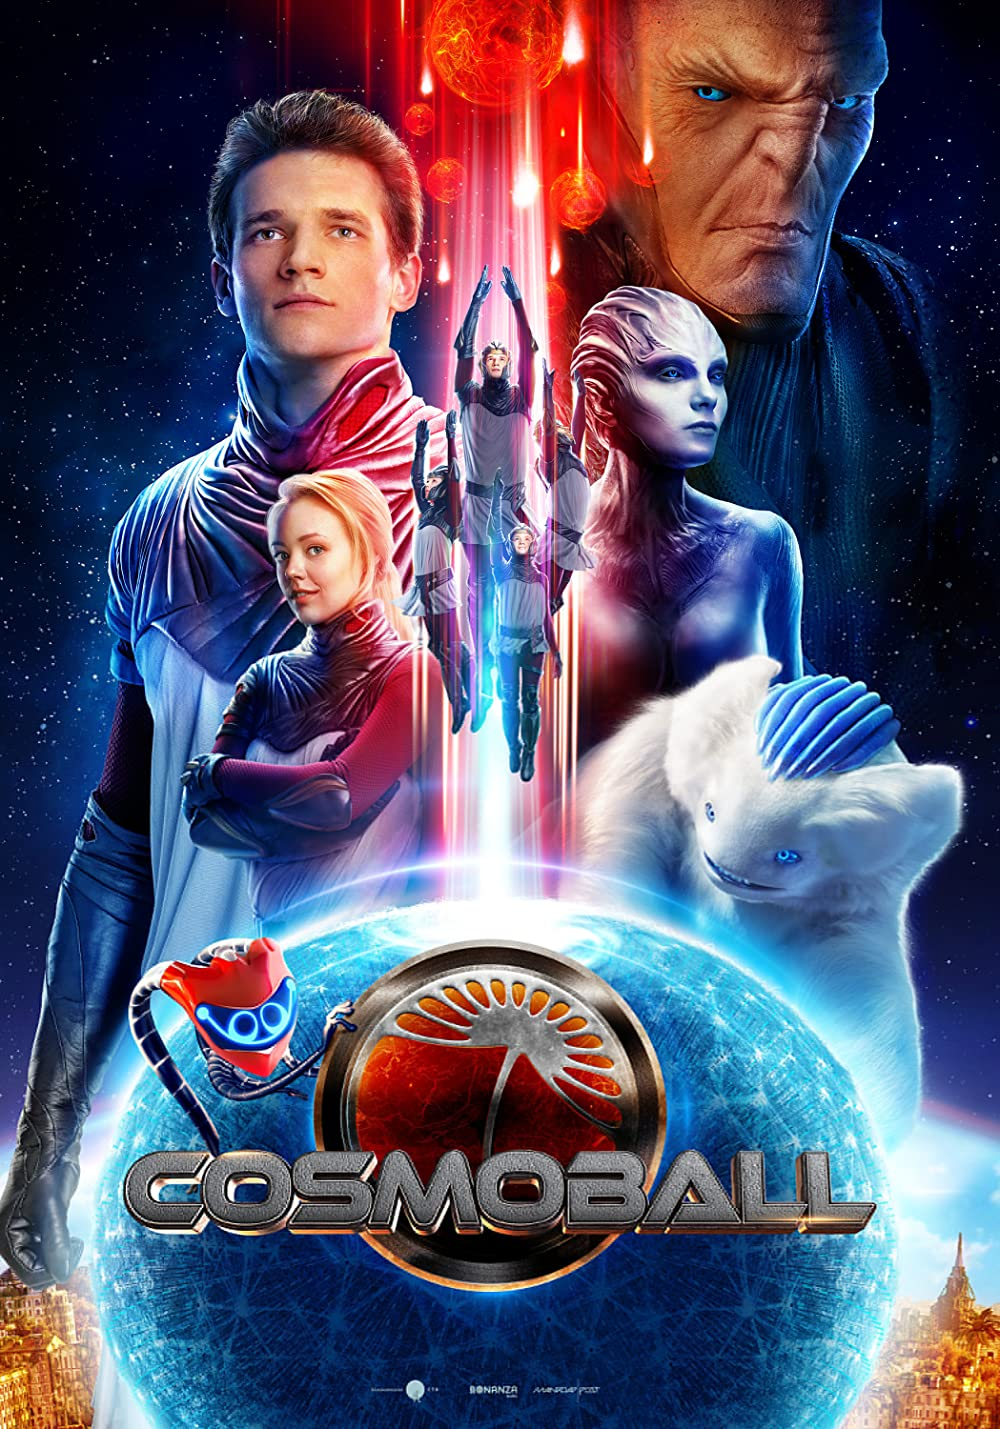 Cosmoball (2020) Subtitle indonesia